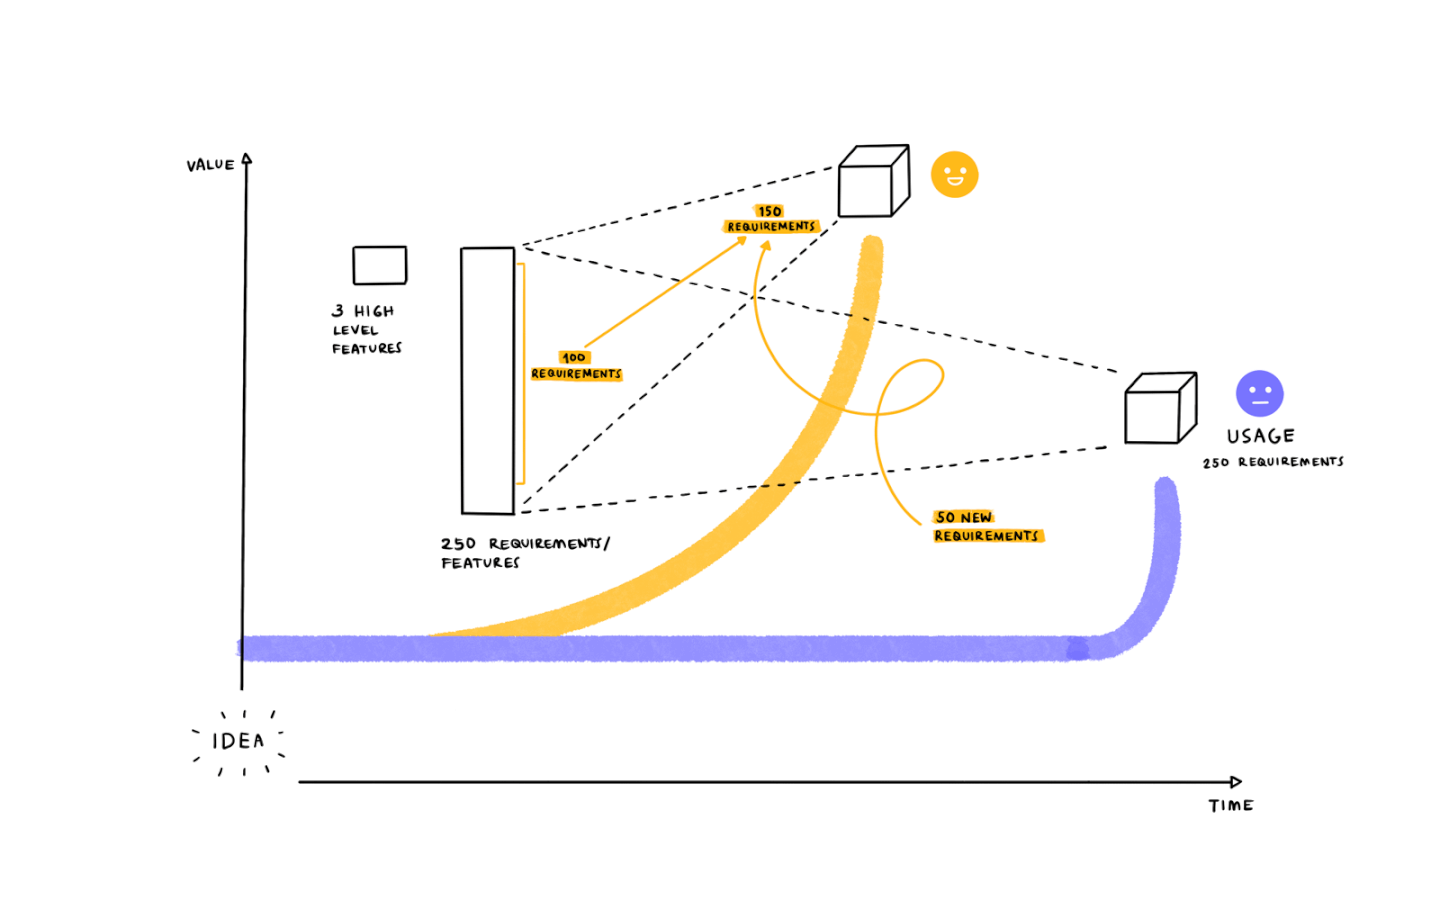 diagram showing the difference in agile and waterfall methodologies